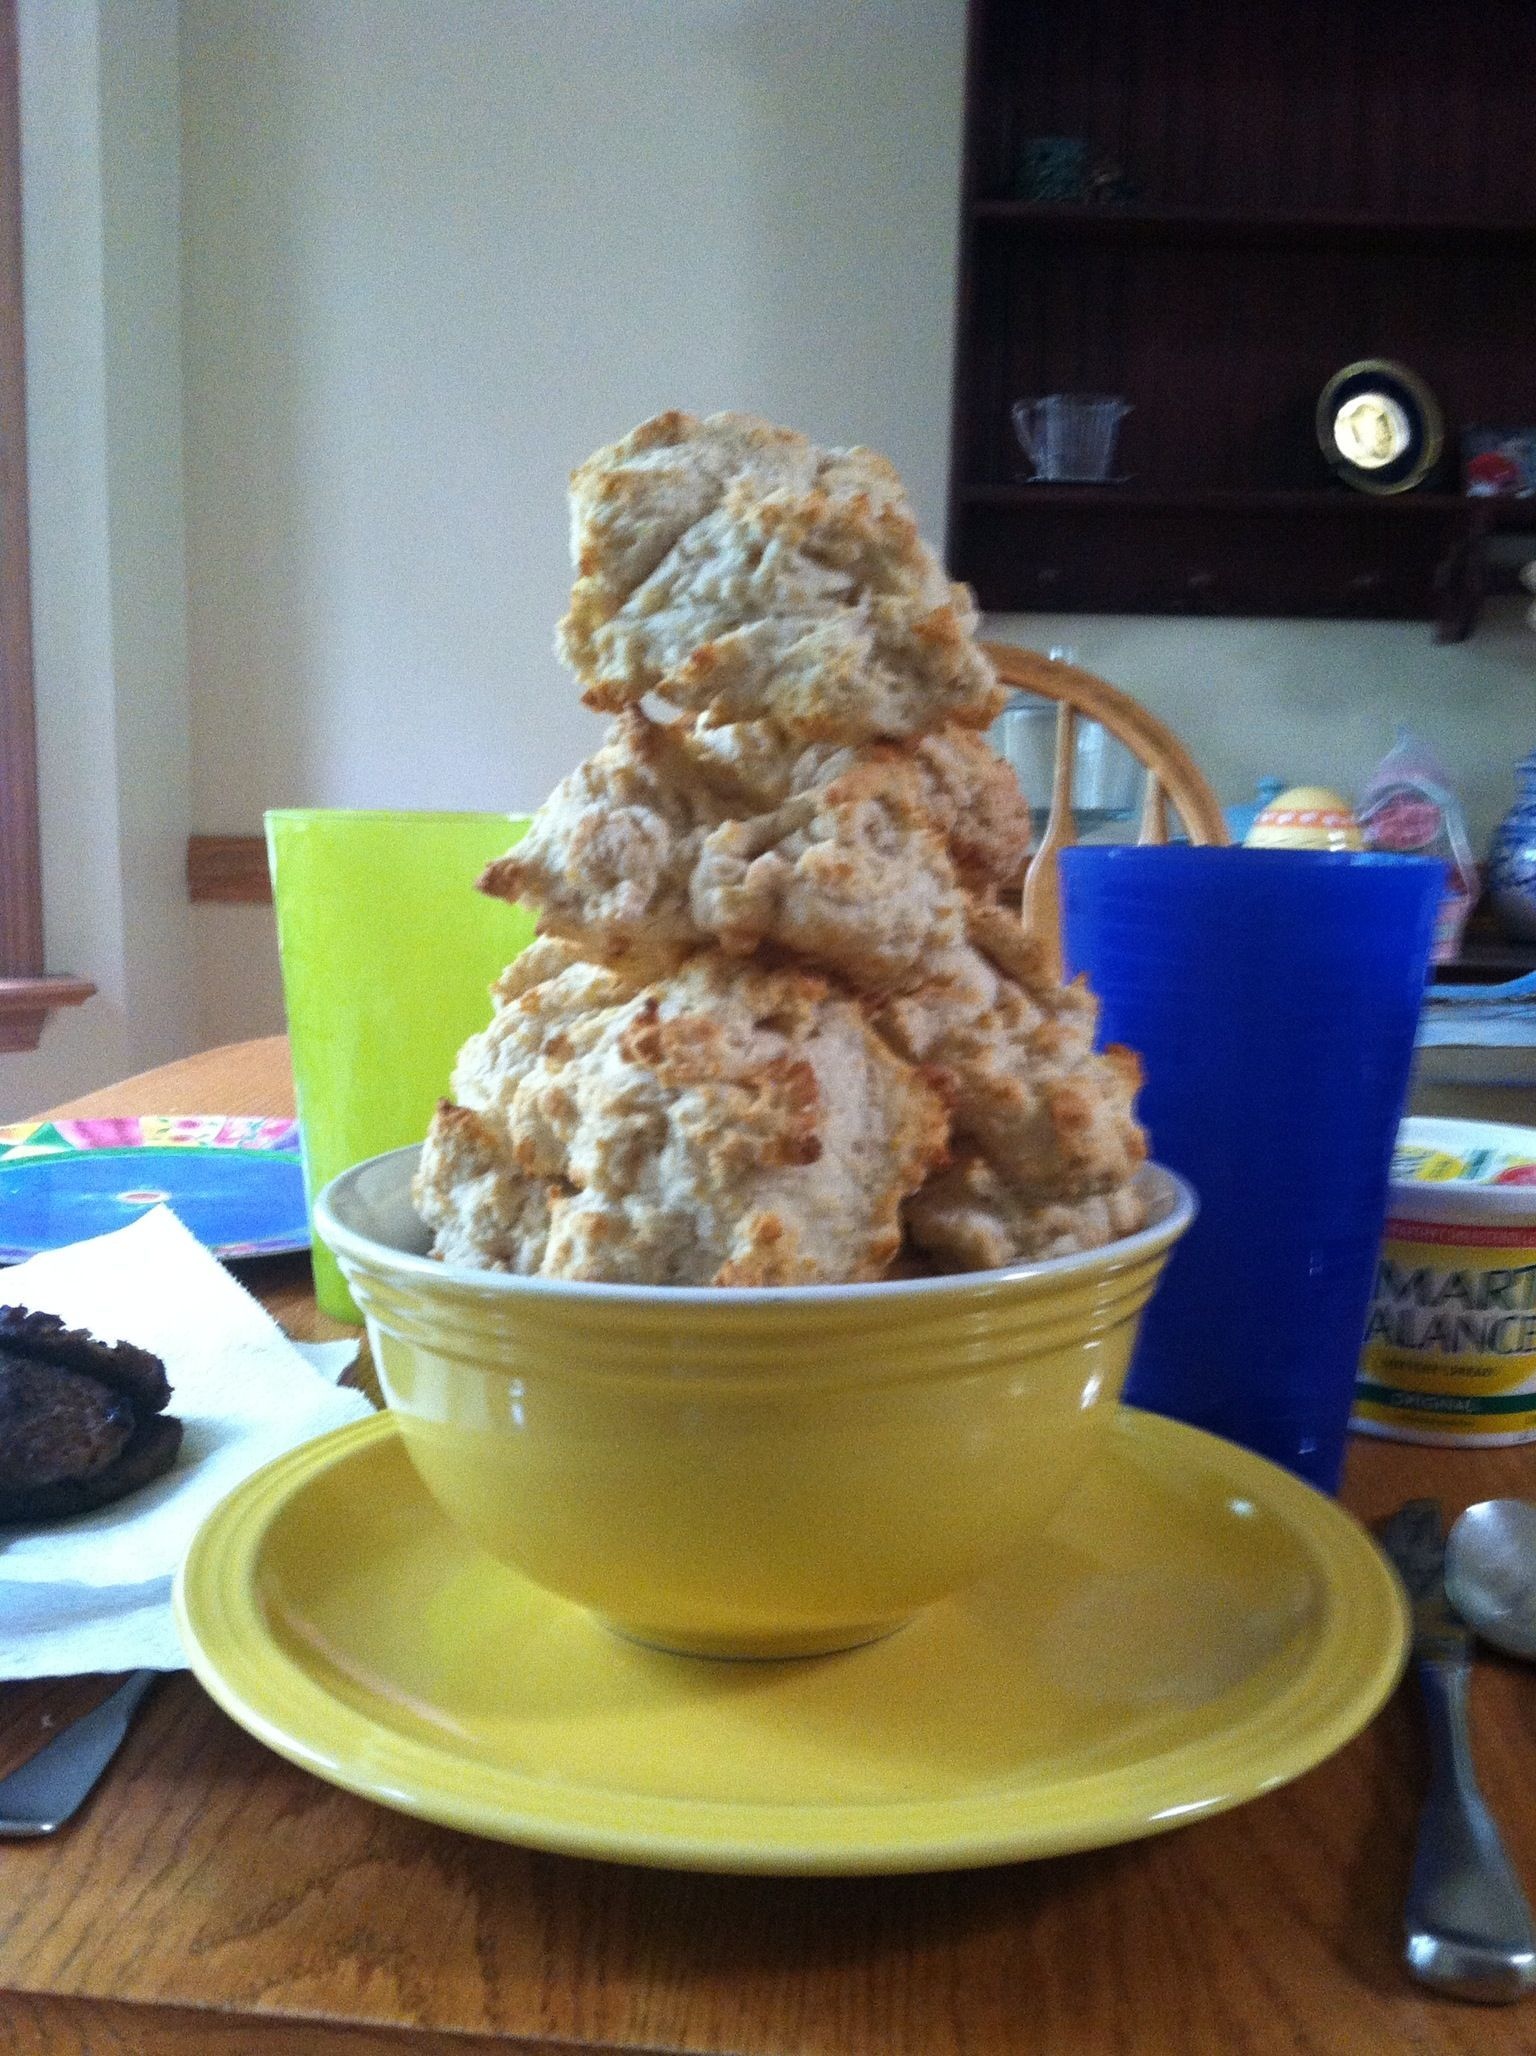 Leaning tower of biscuits:  a Biscuit & Gravy Tradition